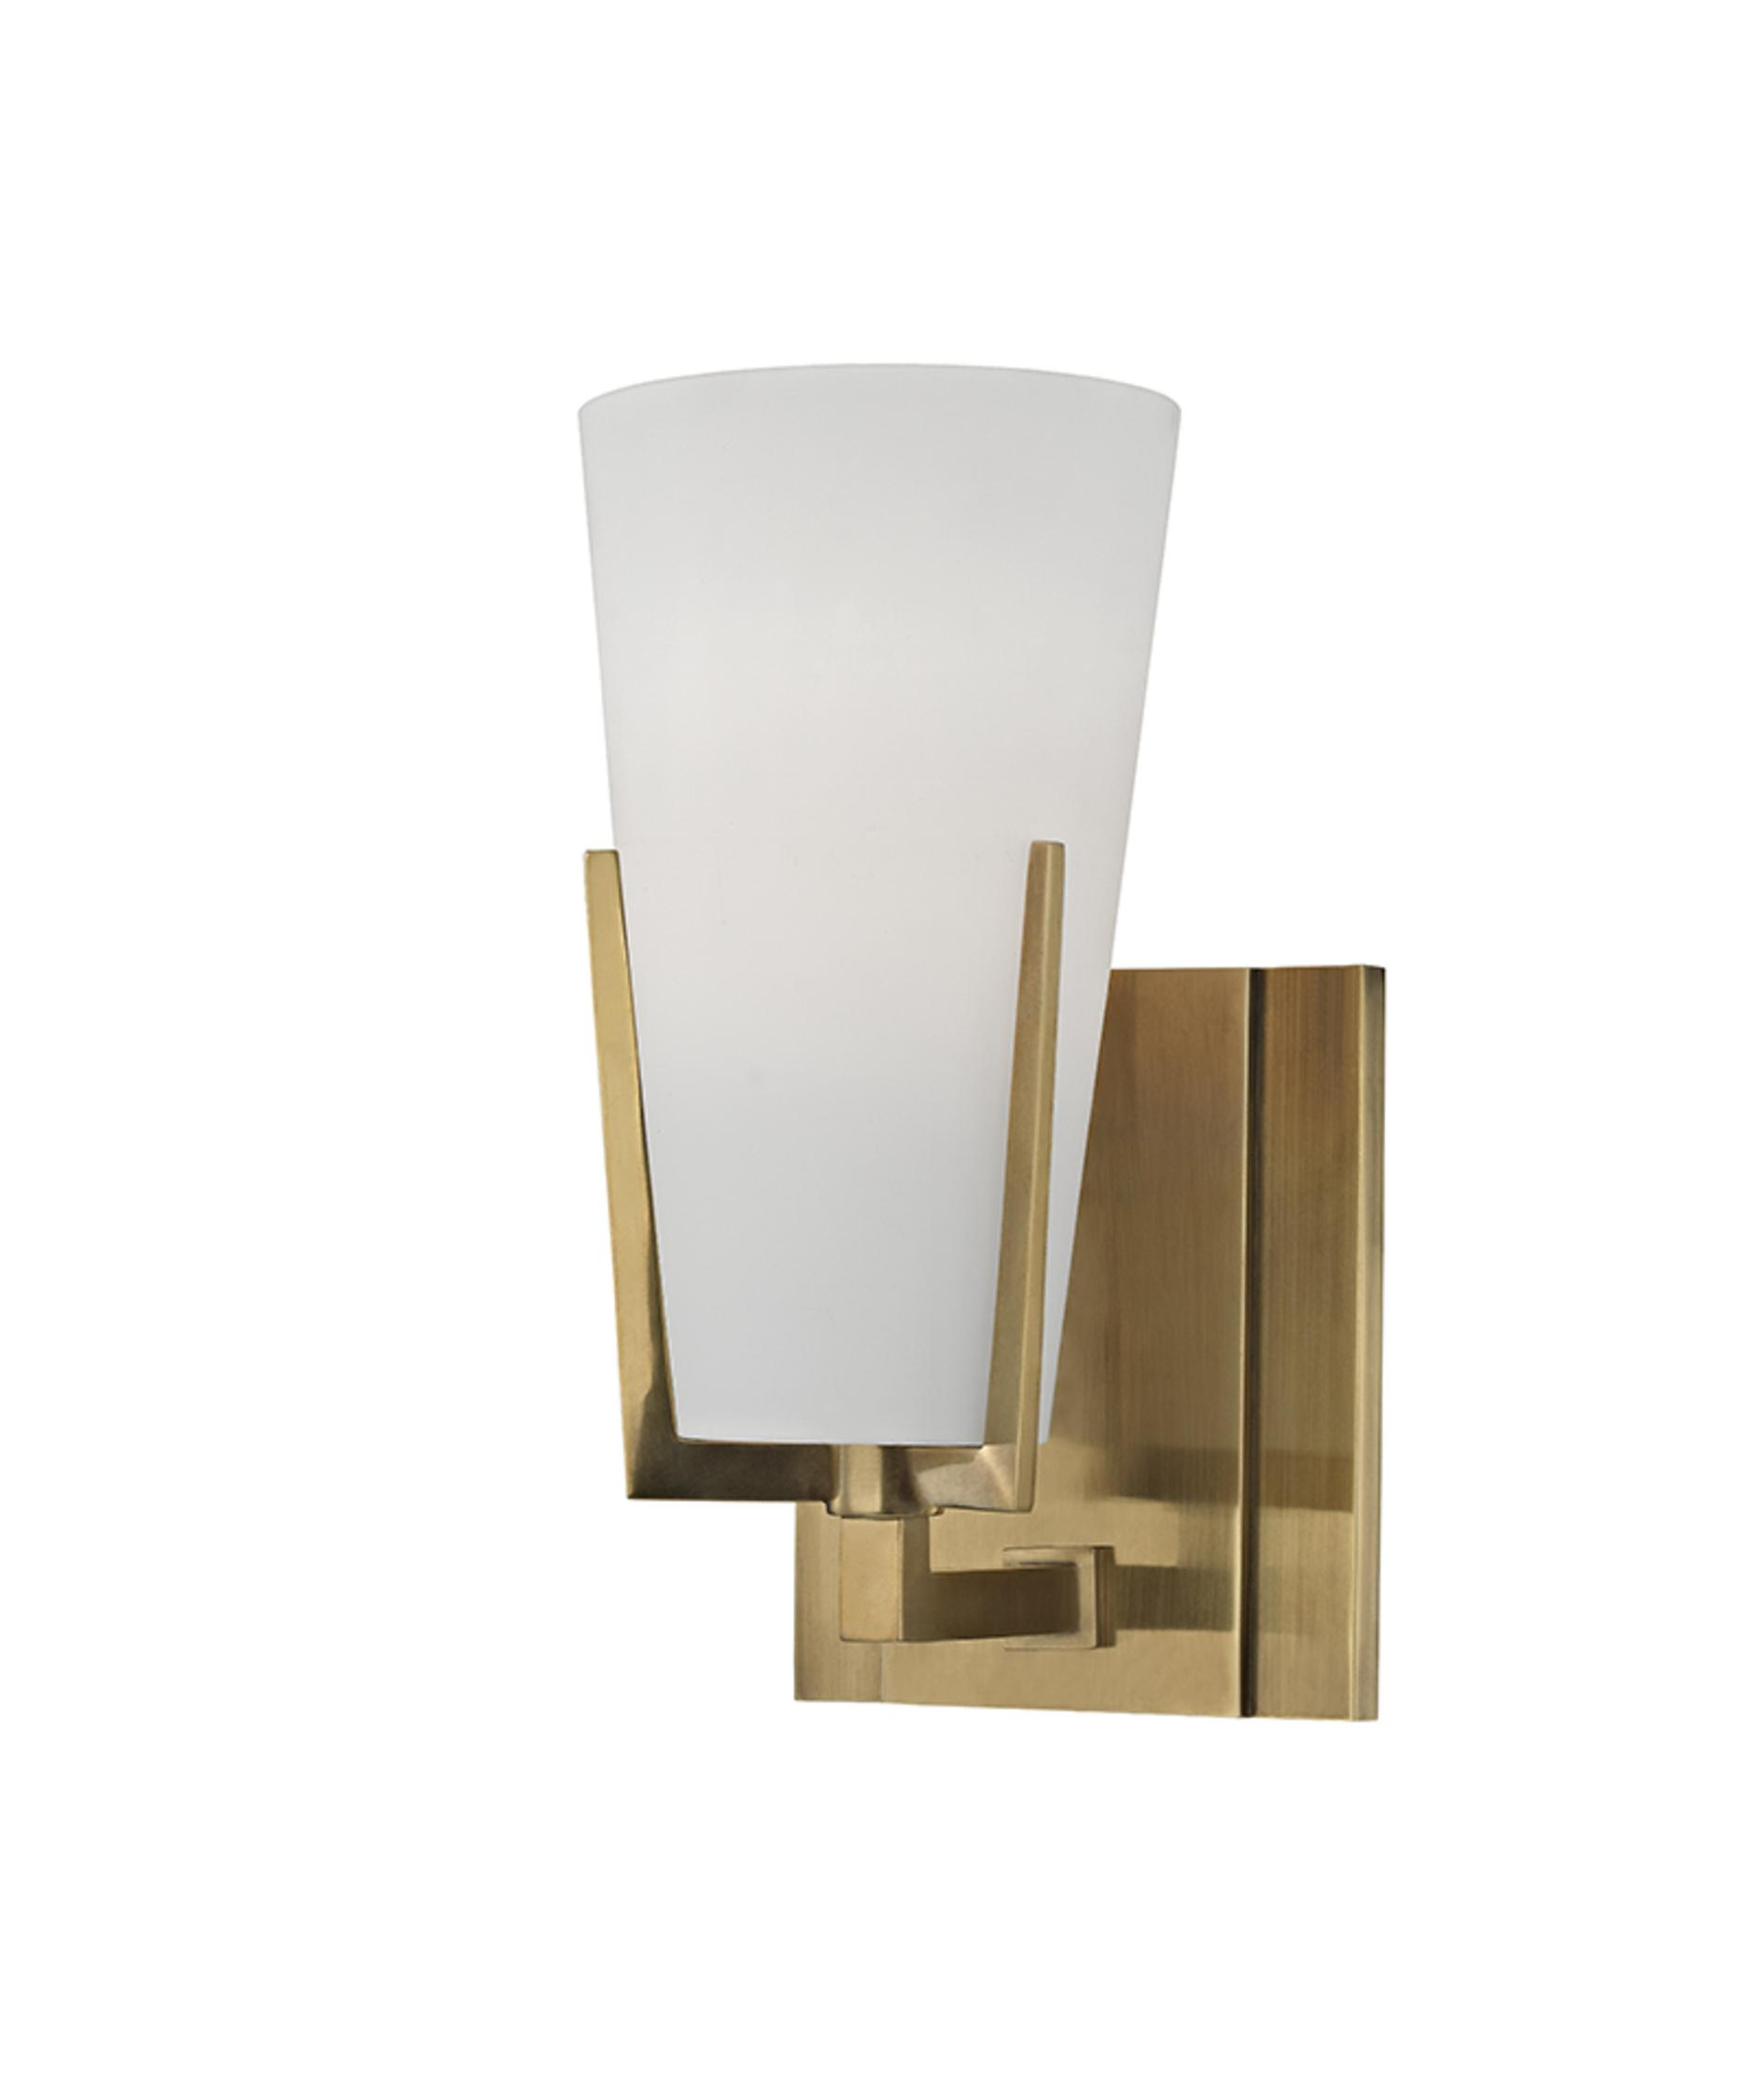 Bathroom Lighting Sconces hudson valley 1801 upton 4 inch wide wall sconce | capitol